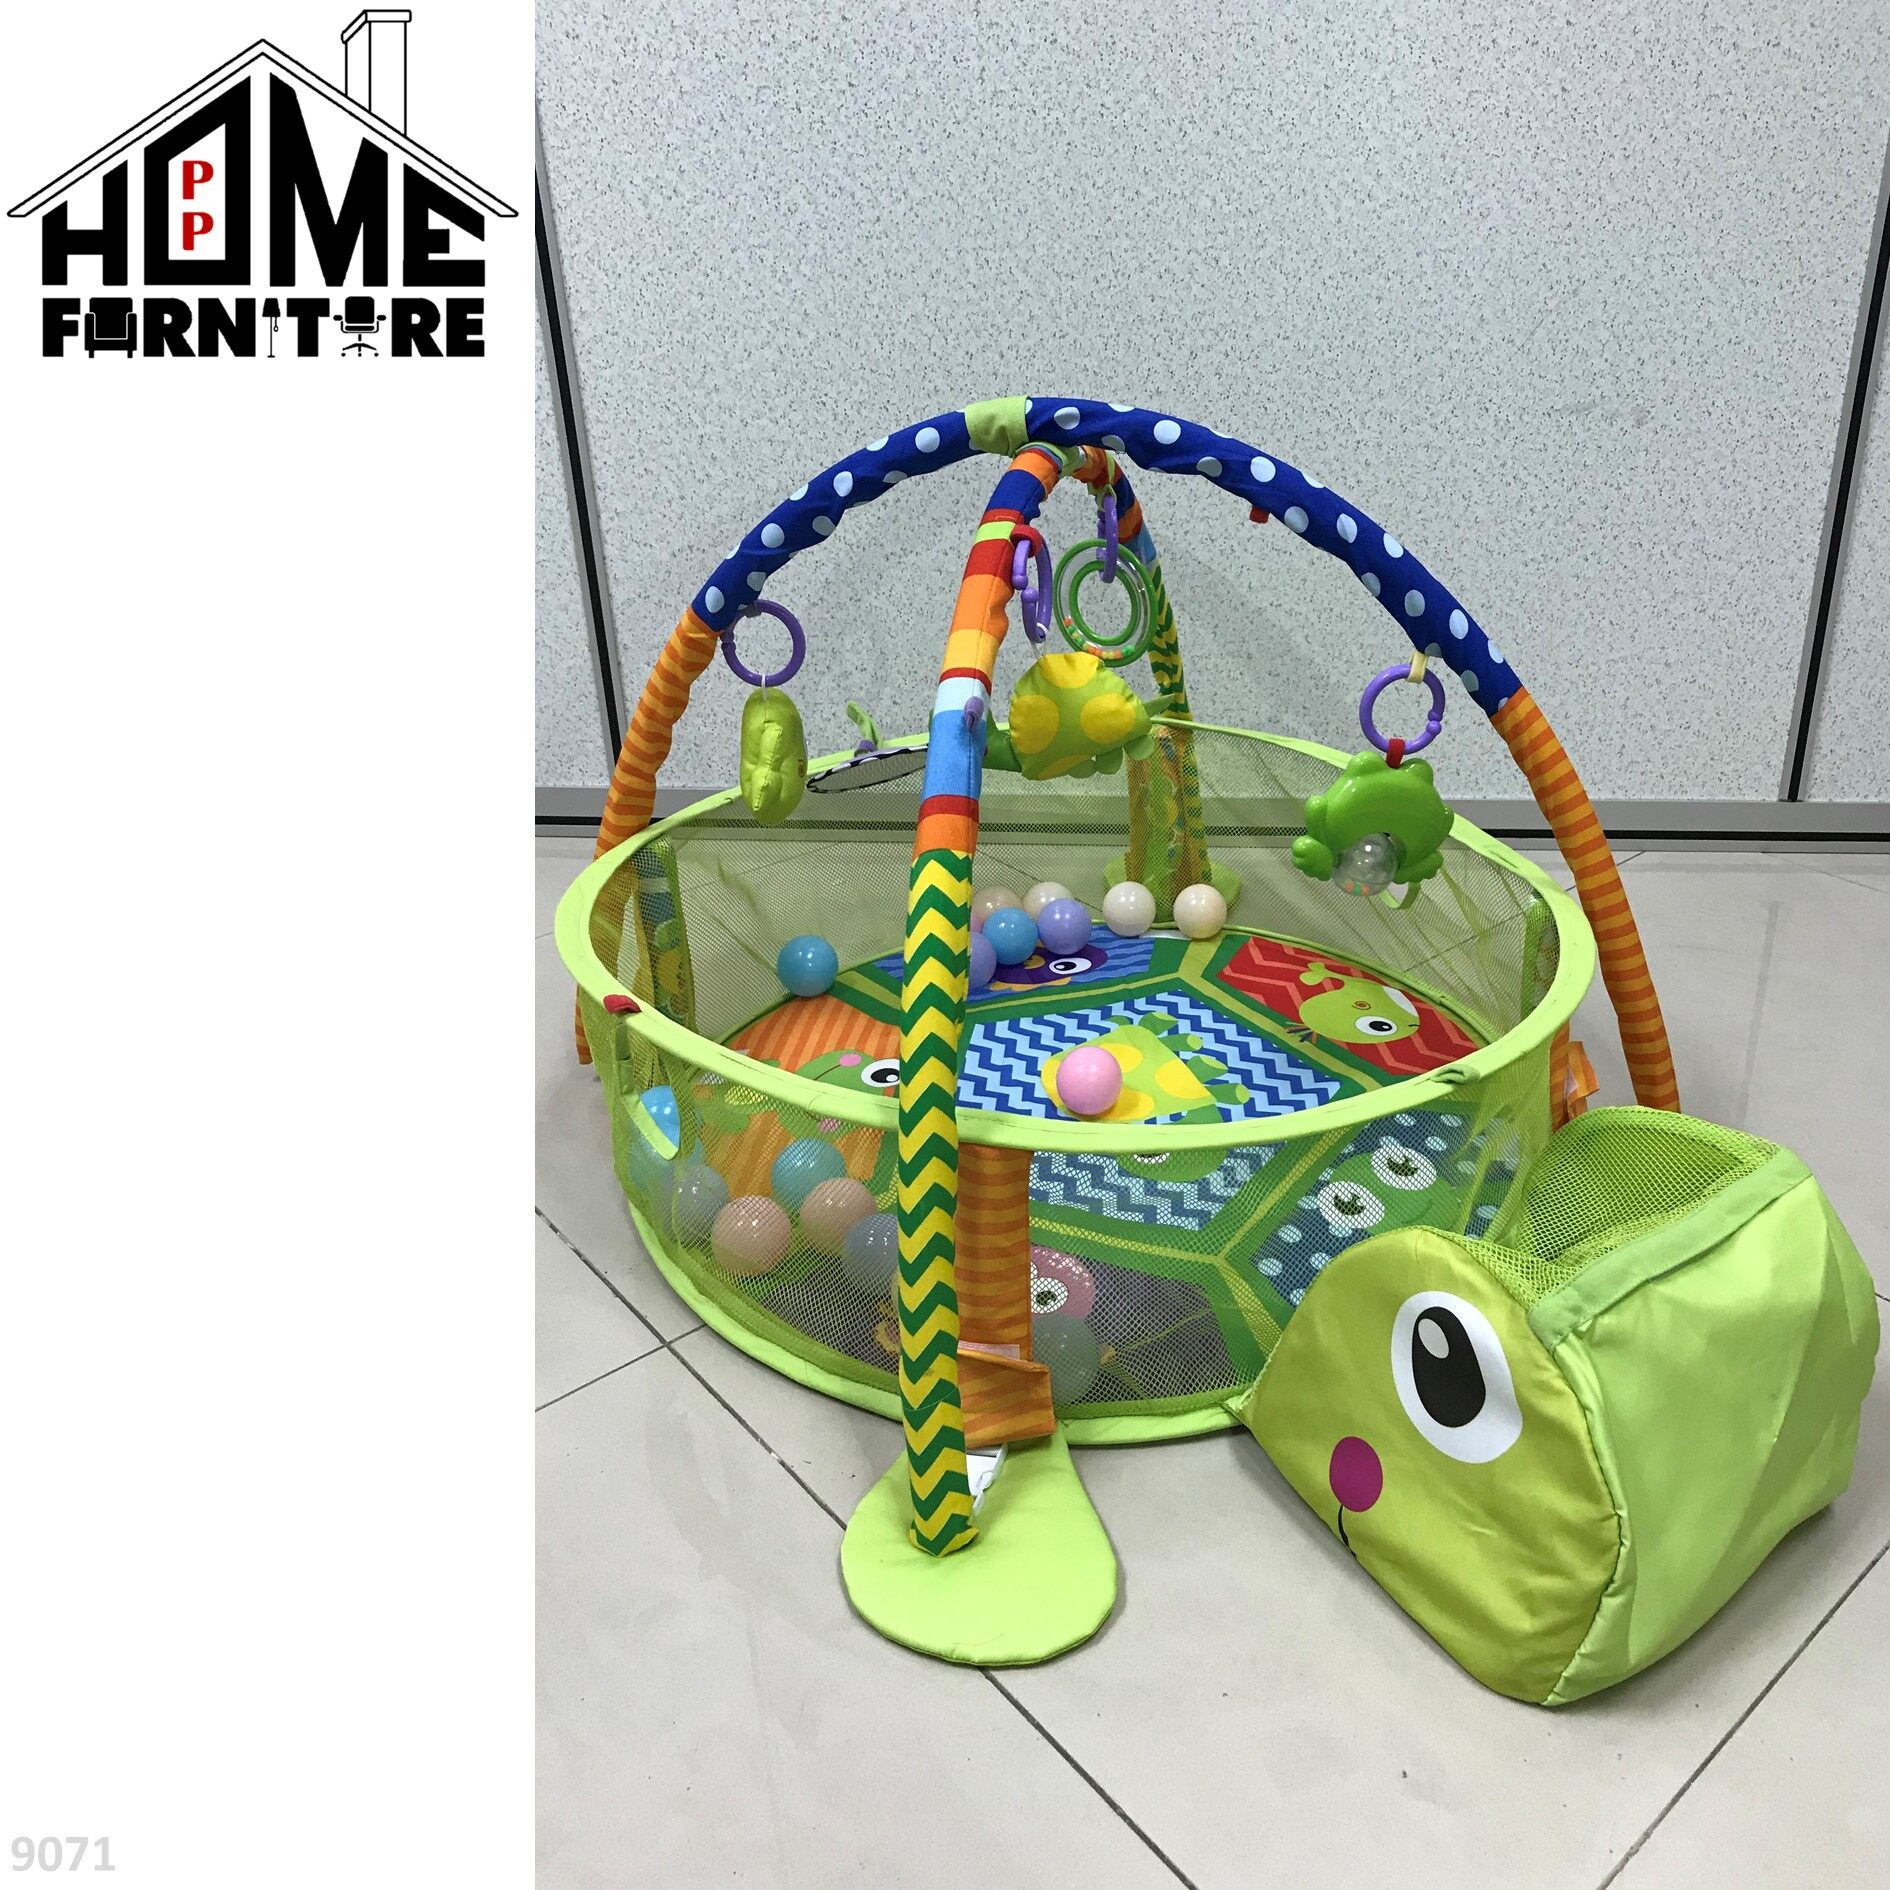 PP BABY Baby crawling mat/play mat/baby fence/baby playground/baby activity gym/婴儿床/婴儿乐园/婴儿圈 PP HOME Kids furniture/Infant play toys/ Baby toys/ Mainan baby婴儿小孩玩具